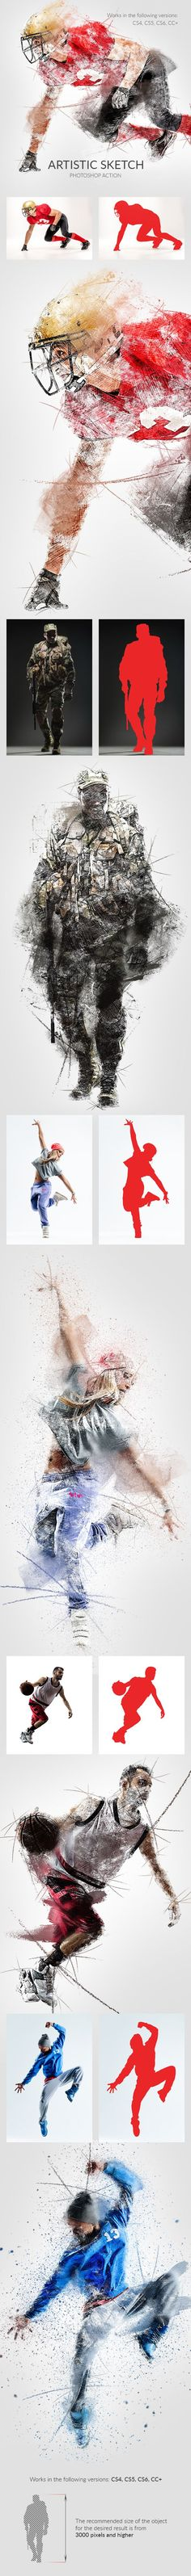 Artistic Sketch Photoshop Action #art #drawing • Download ➝ https://graphicriver.net/item/artistic-sketch-photoshop-action/19652057?ref=pxcr